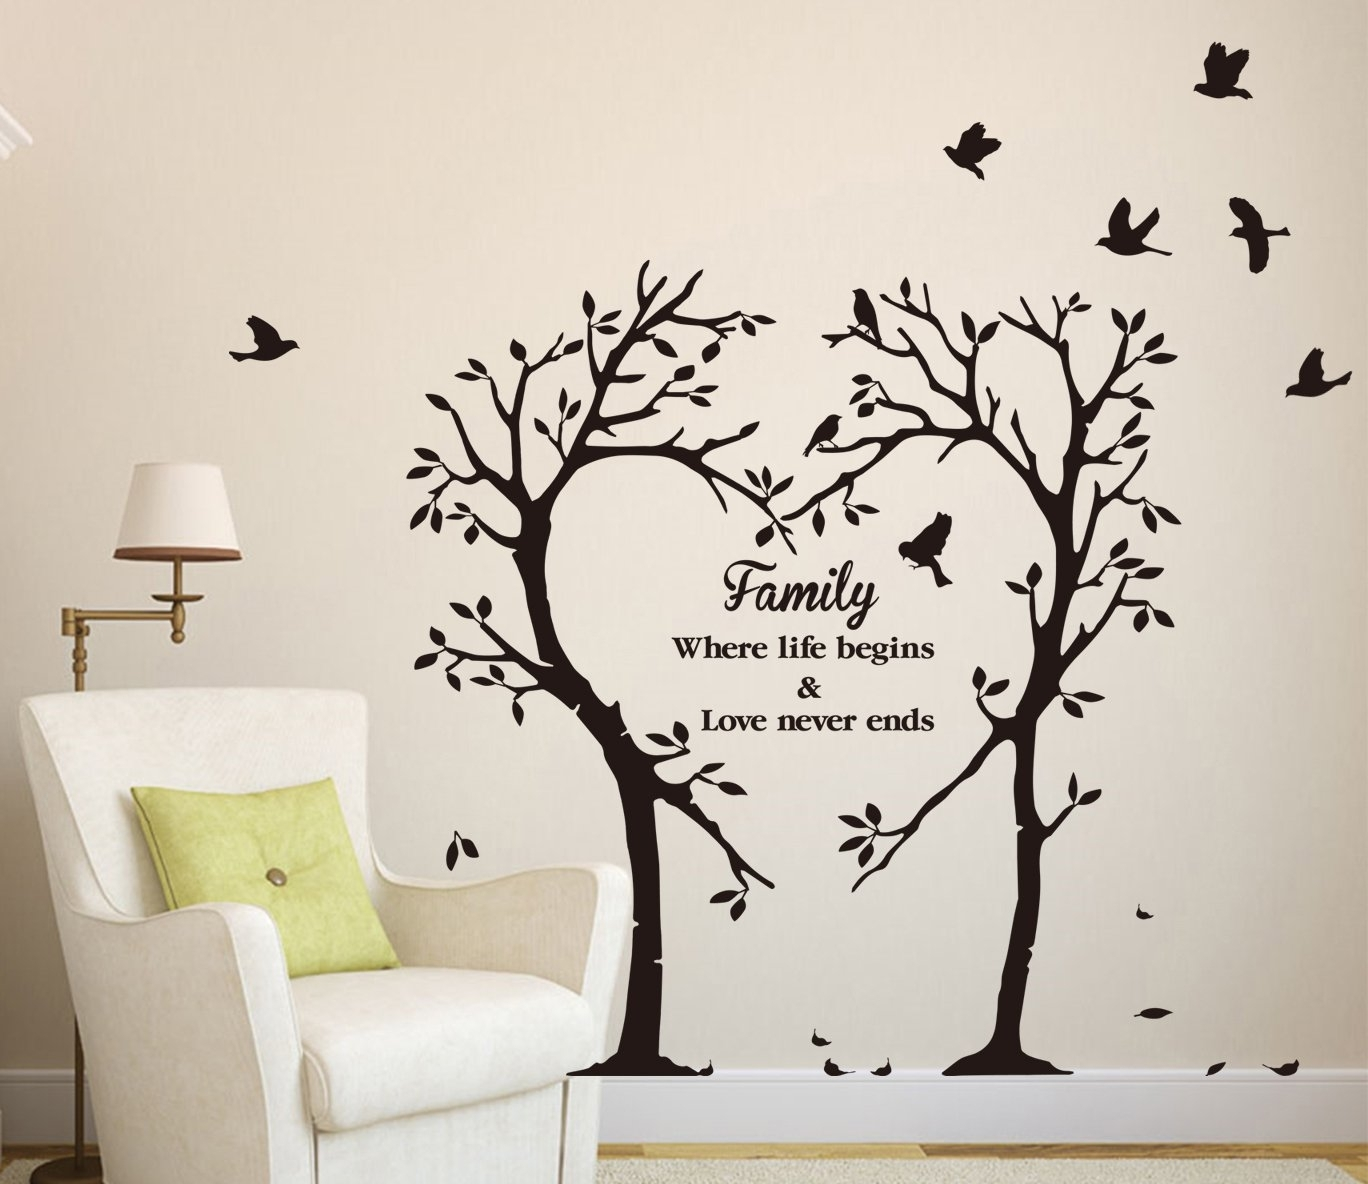 Large Family Inspirational Love Tree Wall Art Sticker, Wall Sticker Pertaining To Most Recently Released Family Tree Wall Art (View 6 of 15)